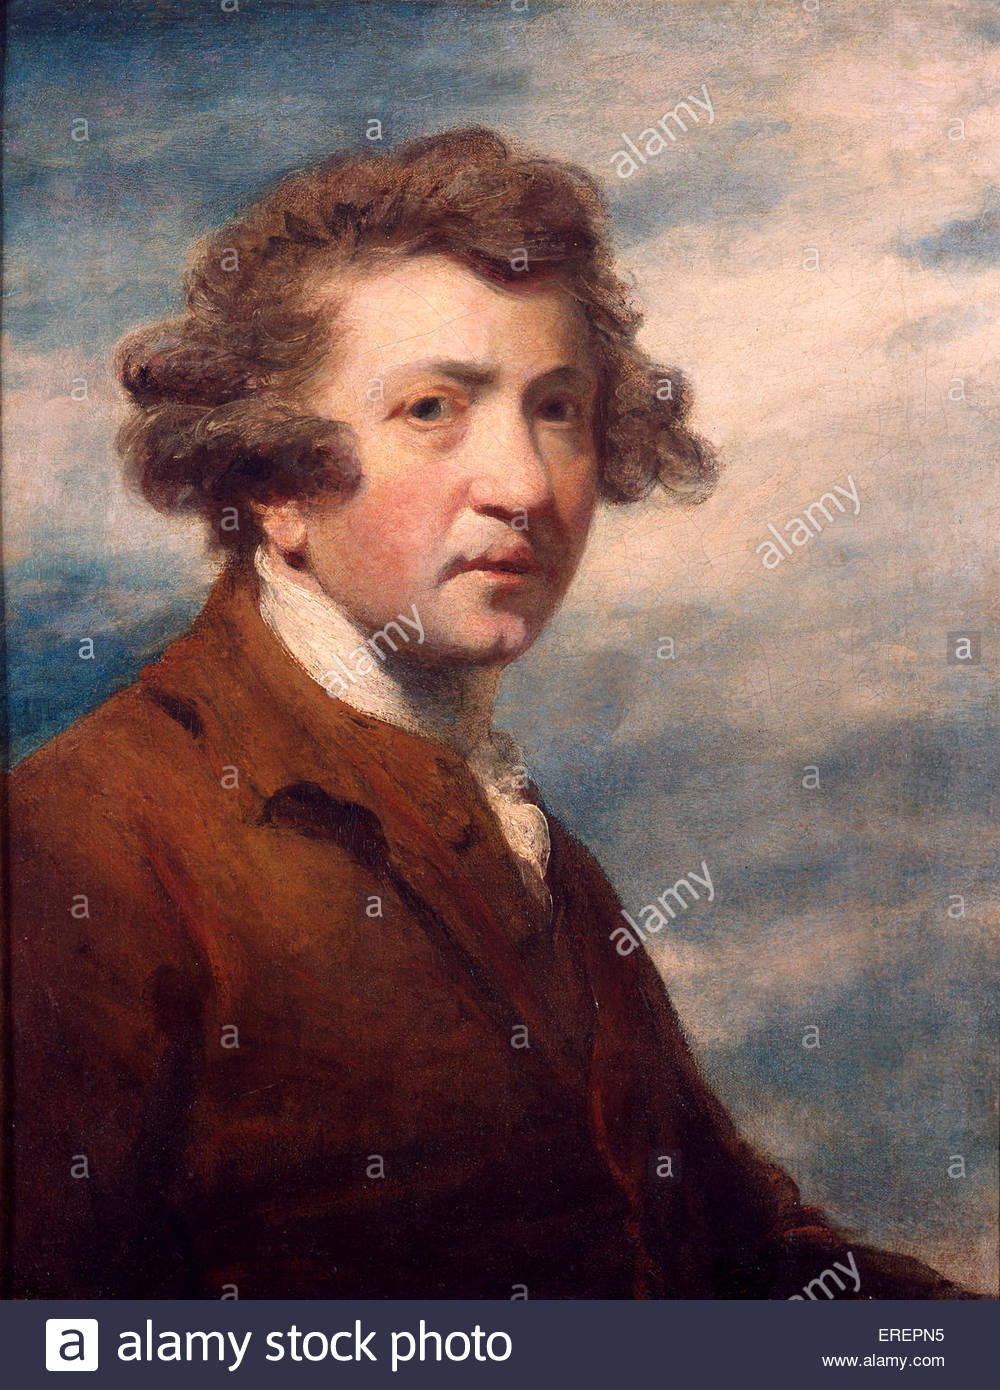 Self portrait of Sir Joshua Reynolds, JR: English painter 16 July 1723 – 23 February 1792. - Stock Image